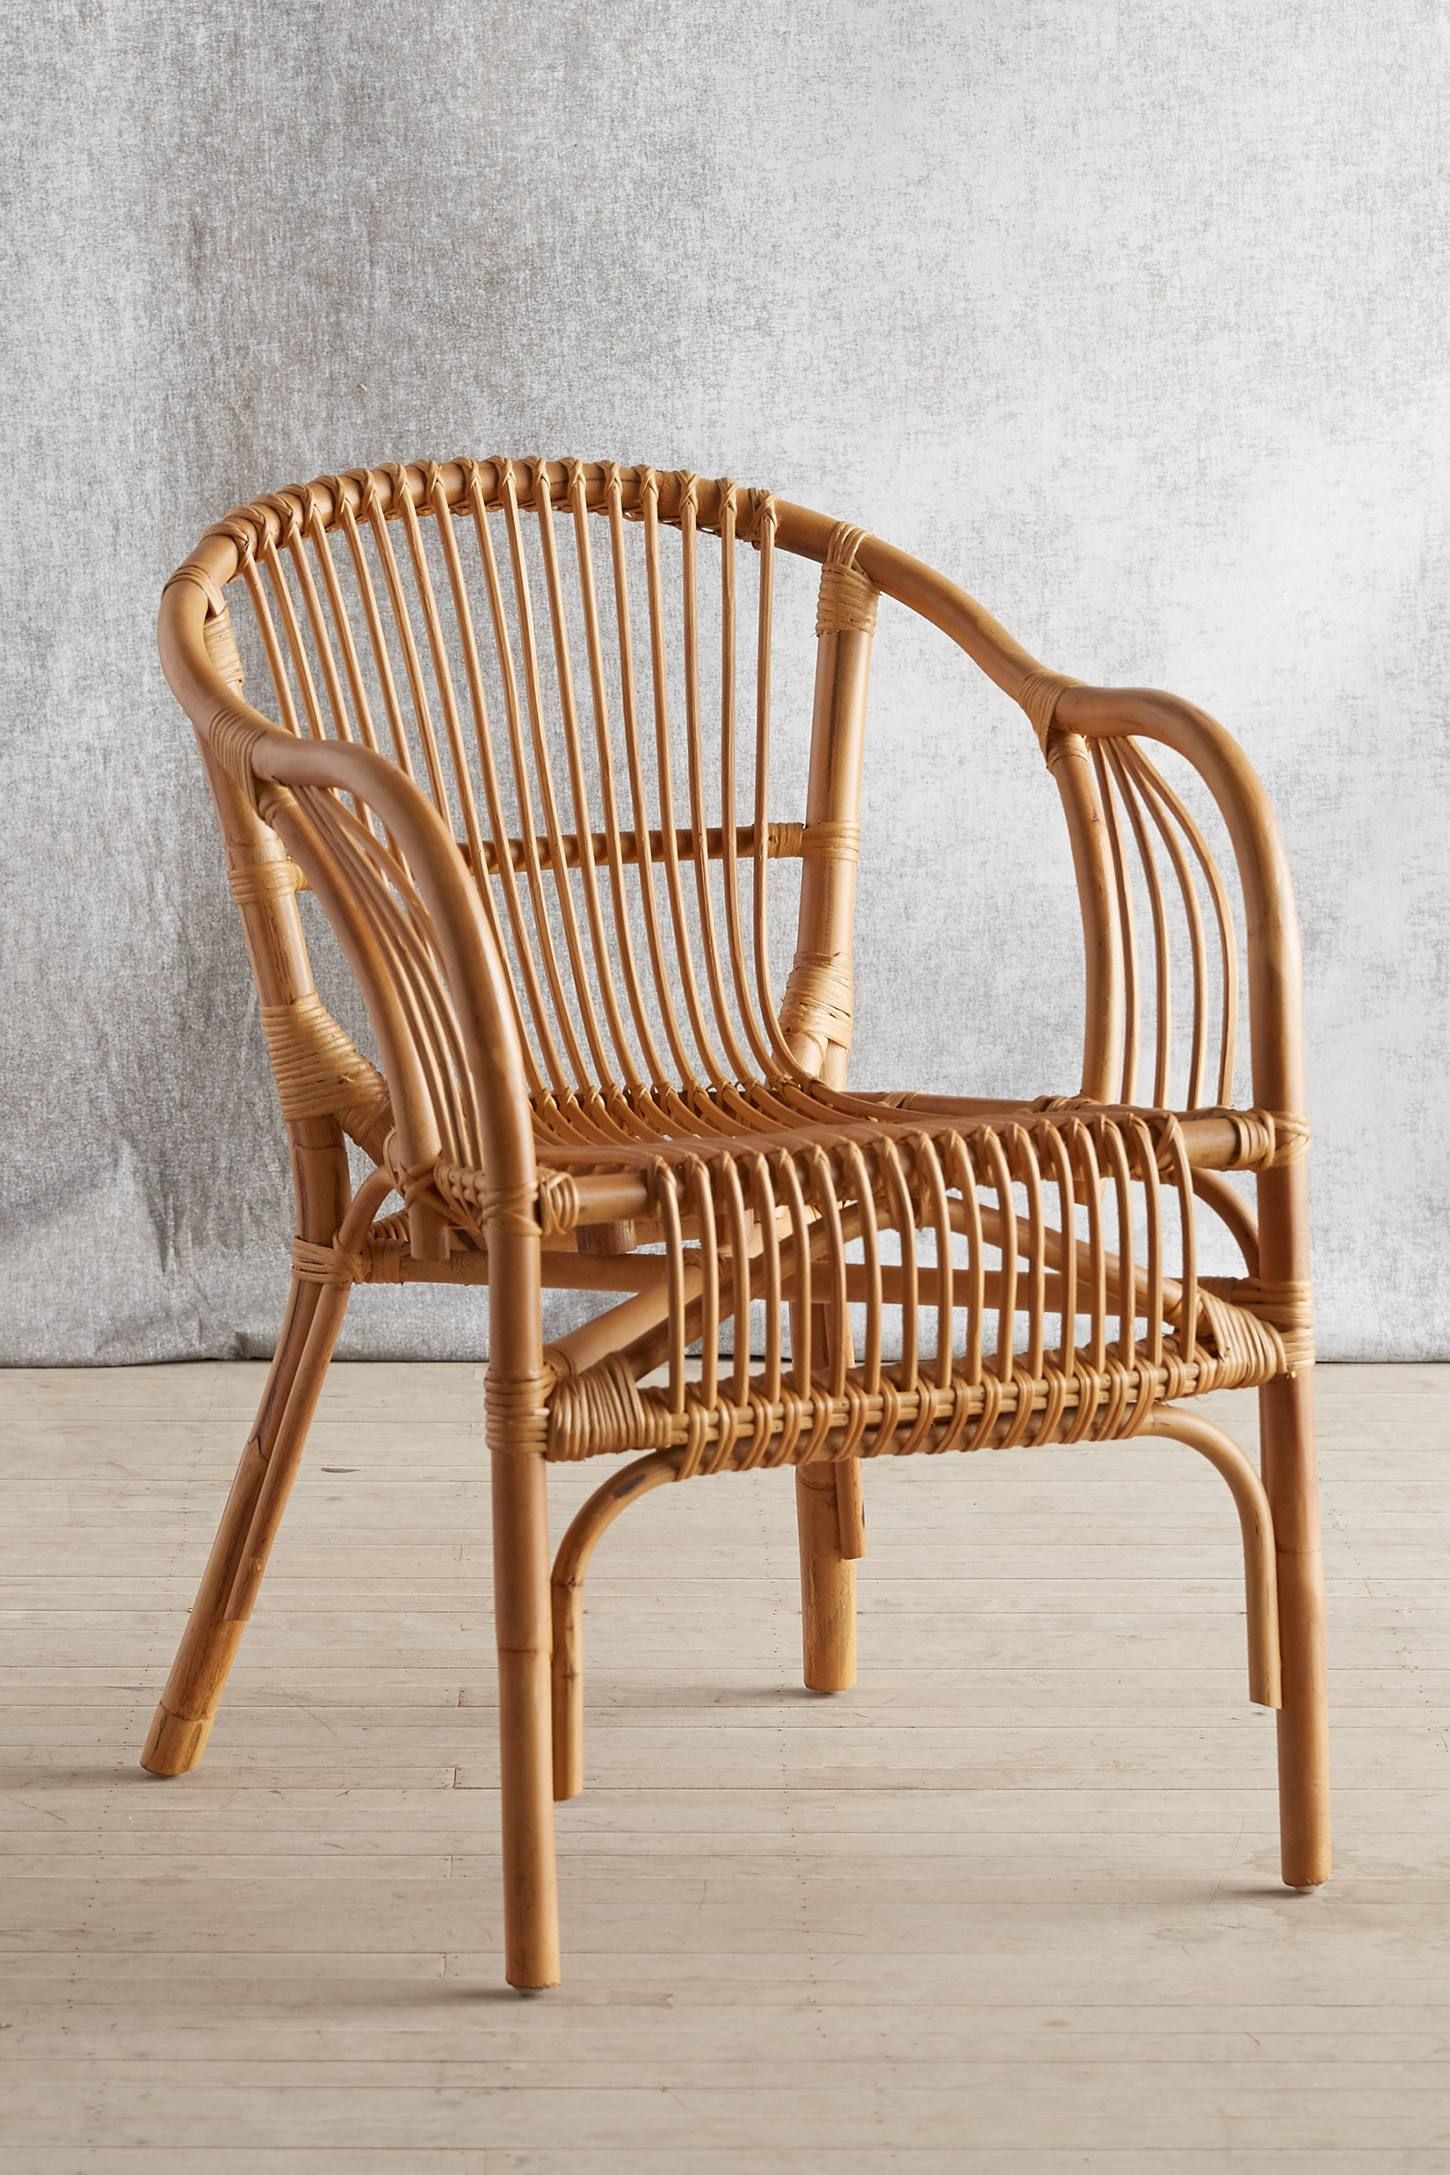 Rattan Chairs Pari Rattan Chair Pkh Pinterest Chair Rattan Furniture And